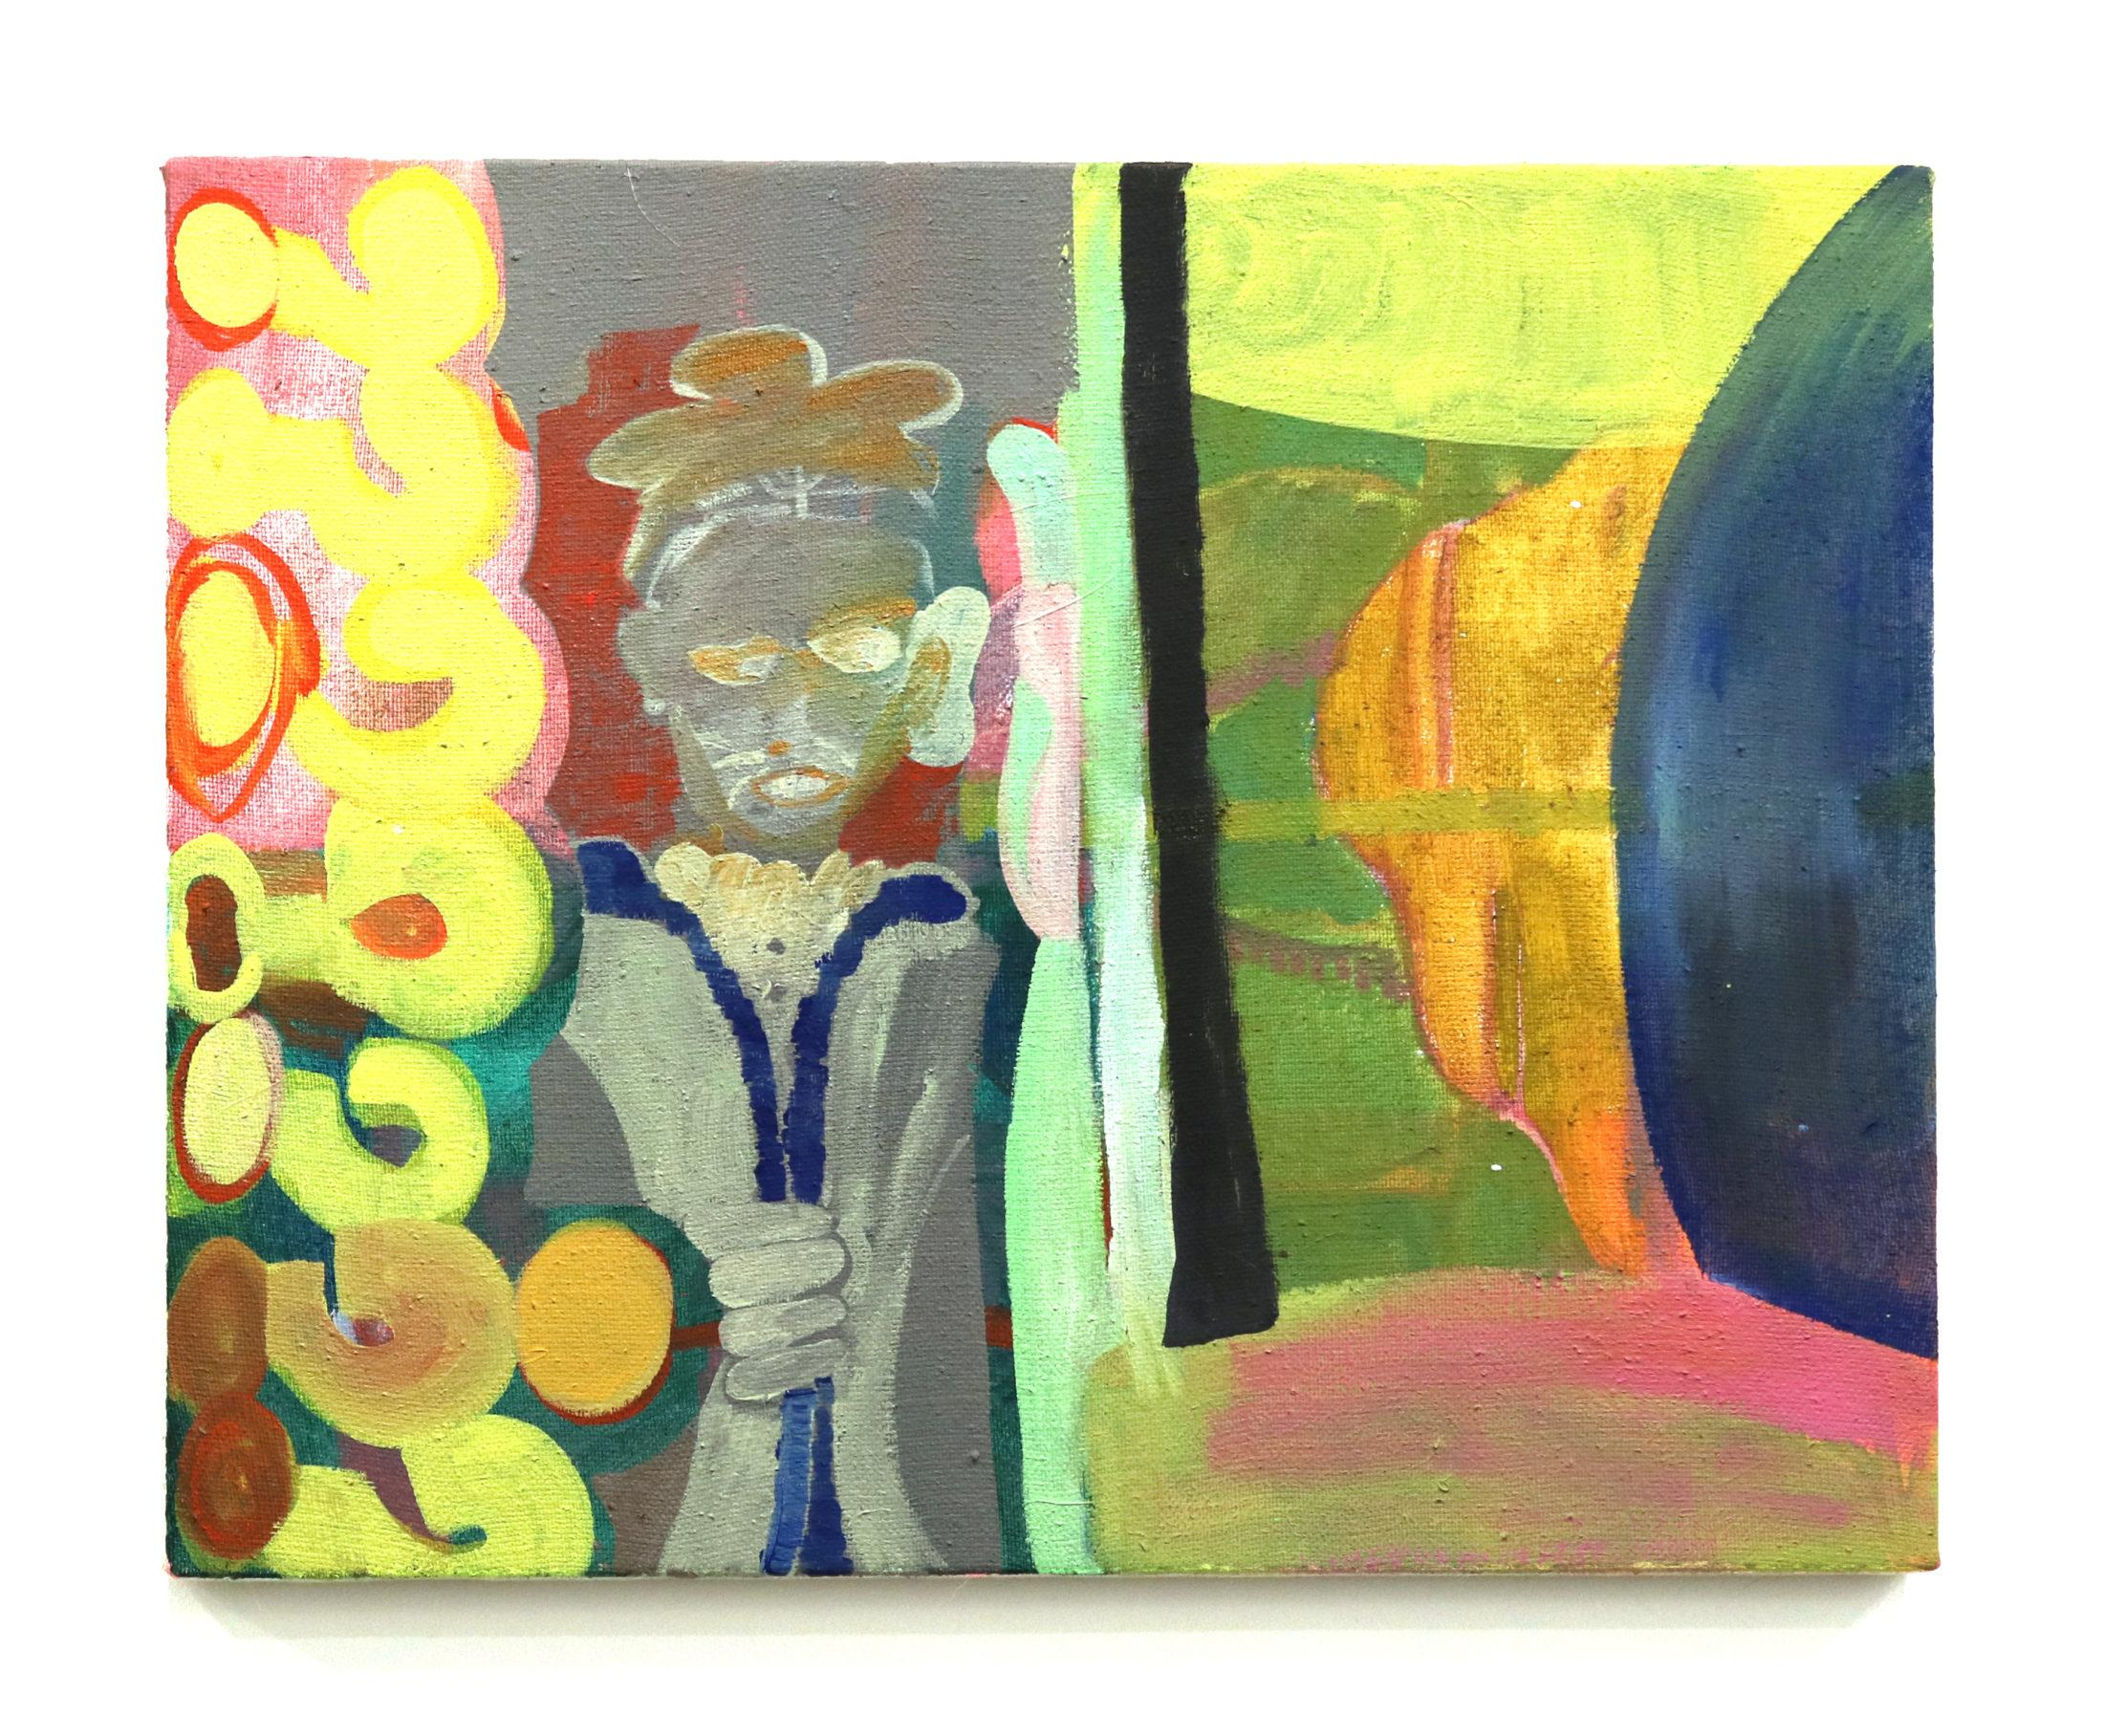 A figure places their cartoonishly enlarged ear against the left side of a wall. On the other side, large abstract forms are visible. Large question marks fill up the left edge of the painting.